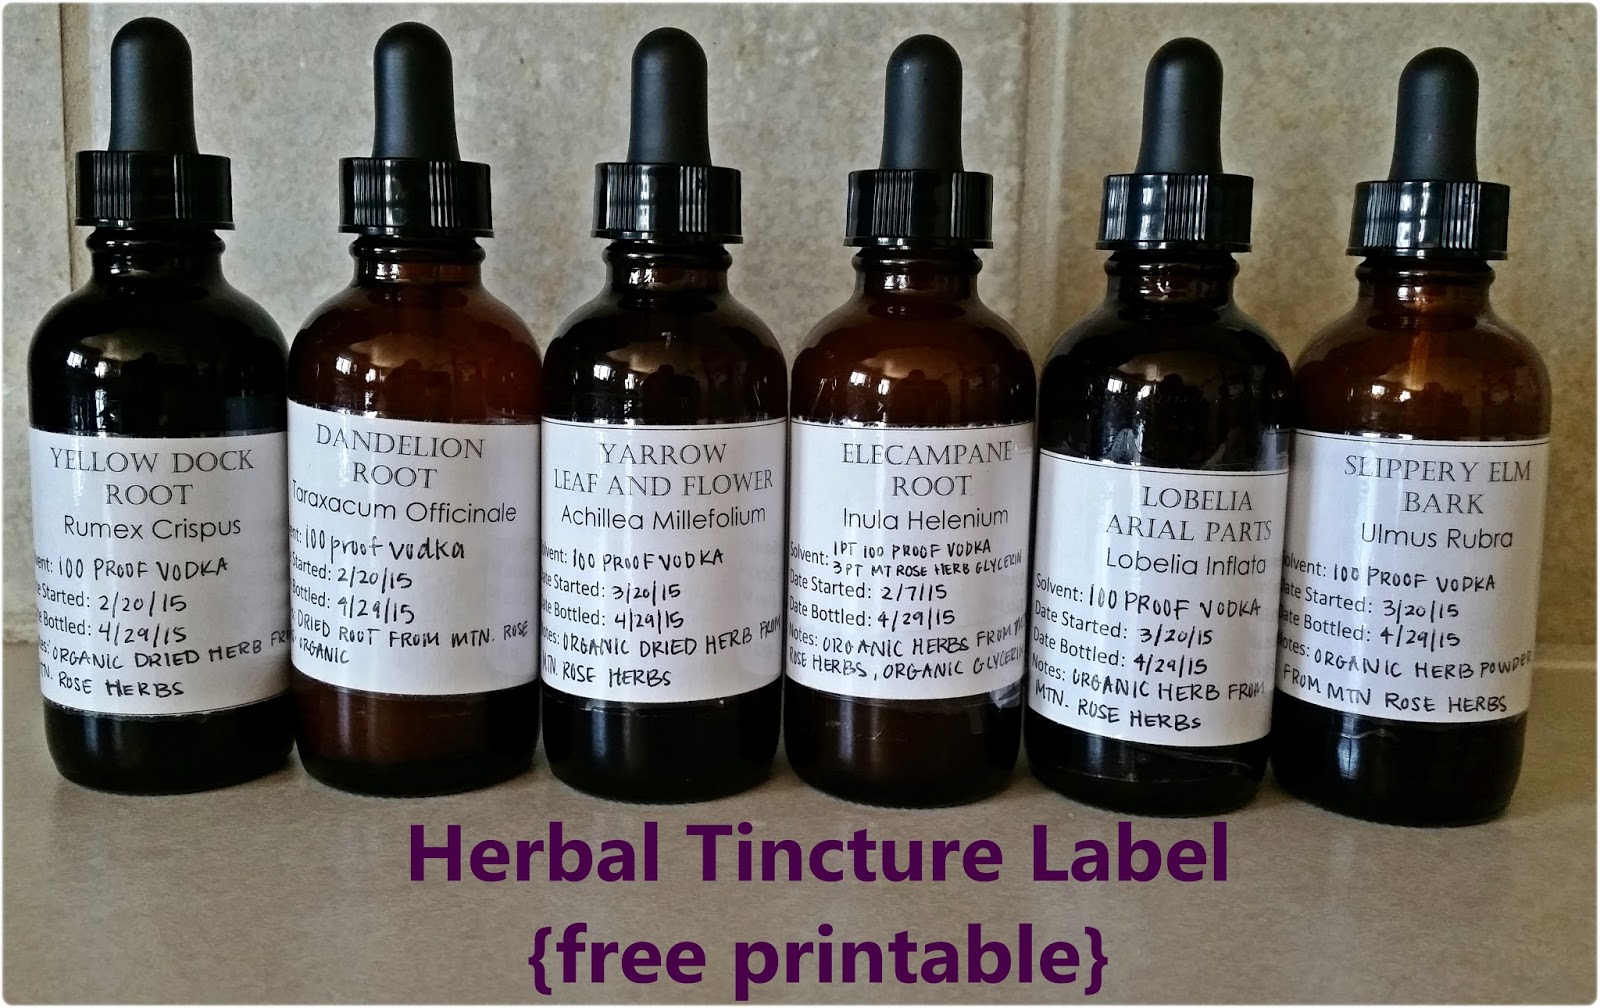 http://www.ericksonandco.com/2015/04/herbal-tincture-label-template-free.html